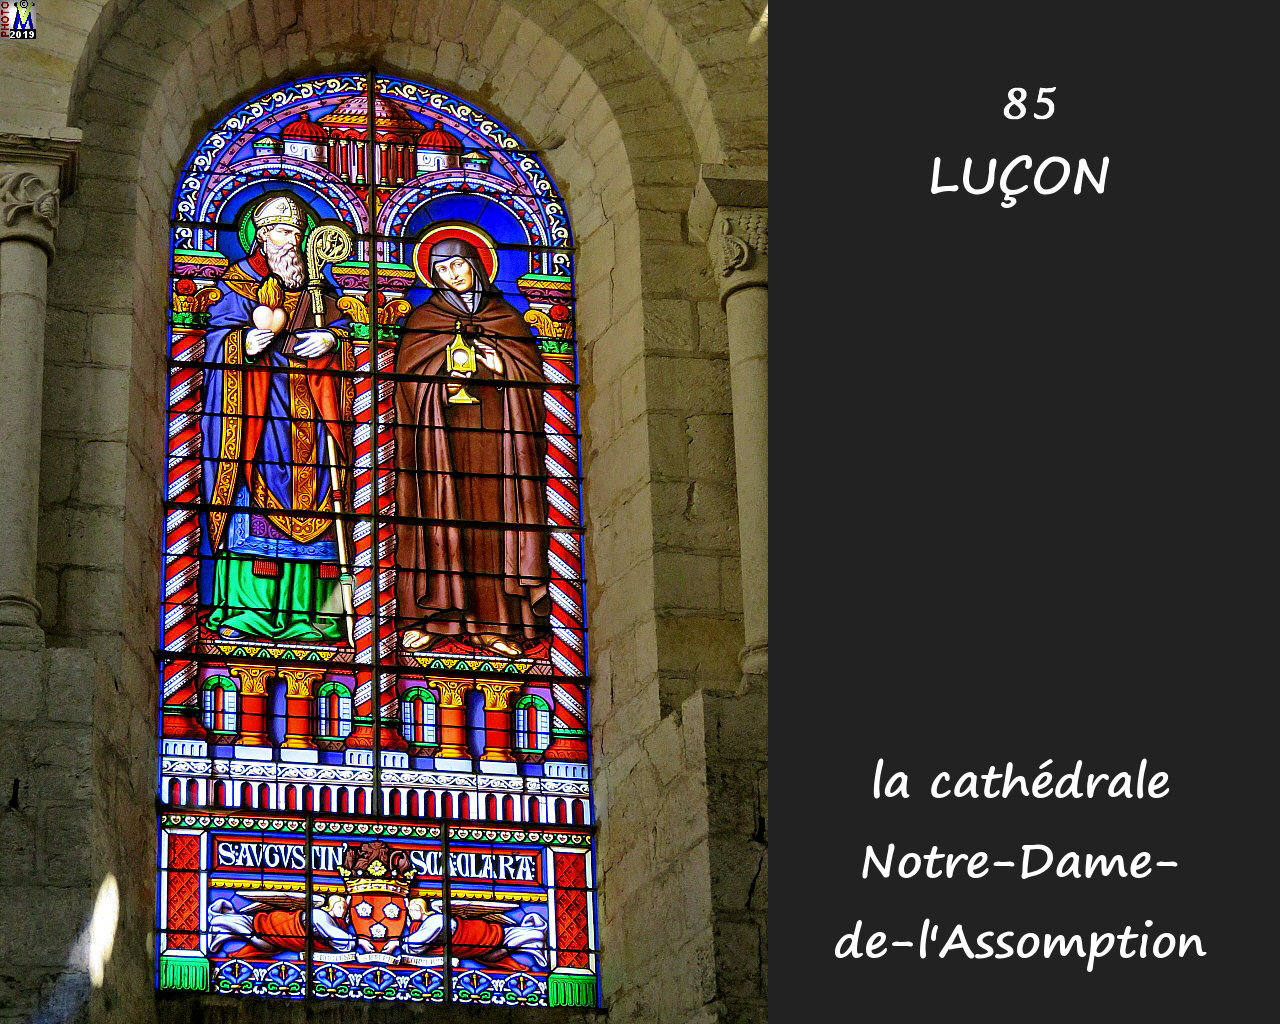 85LUCON_cathedrale_226.jpg